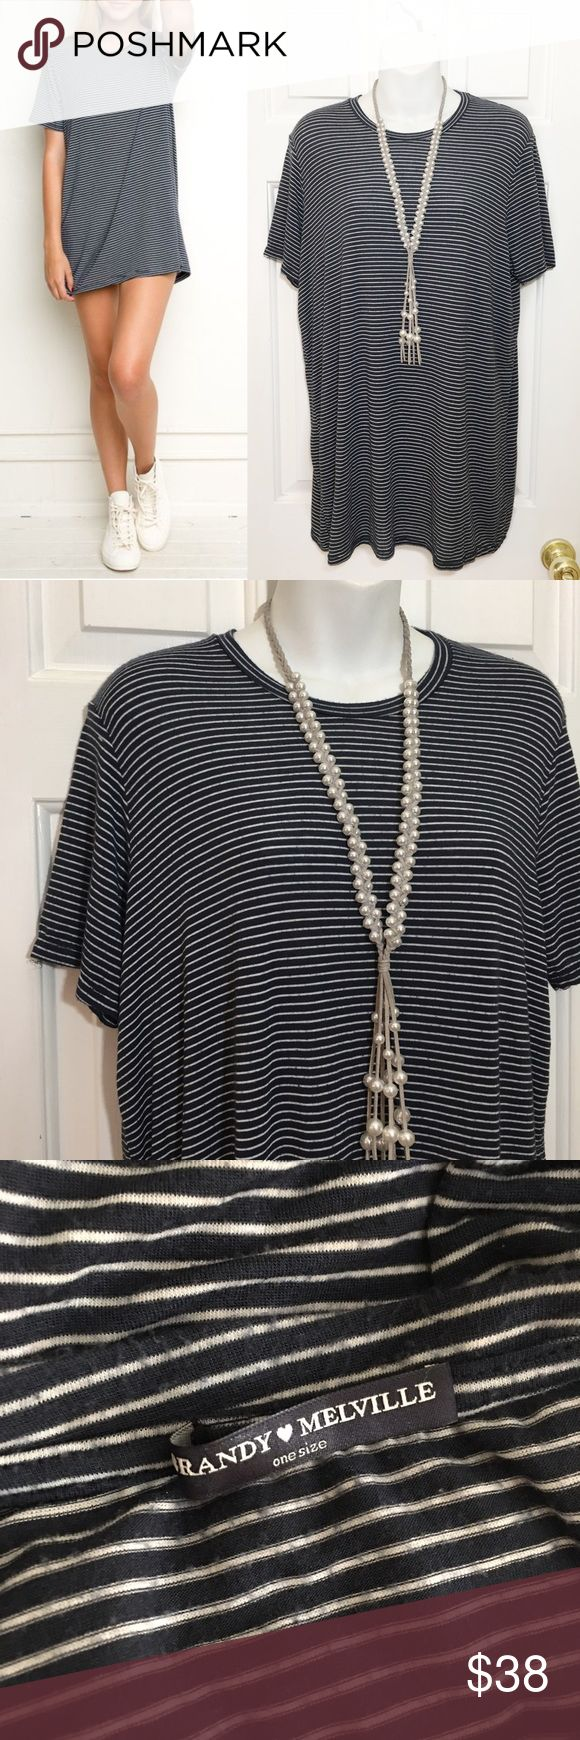 вяαи∂у мєℓνιℓℓє - Striped Tshirt Dress Pair with a cardigan for the cooler months!  ☞ ℓσωєѕт?  Prices are firm unless offer is reasonable  Bundle option is available   ☞ мσ∂єℓ? I do not model my items Comment with specific measurement requests Please allow 2-3 days for request fulfillments   ☞ яєѕєяνє? тяα∂є?  I do not reserve or trade items Brandy Melville Dresses